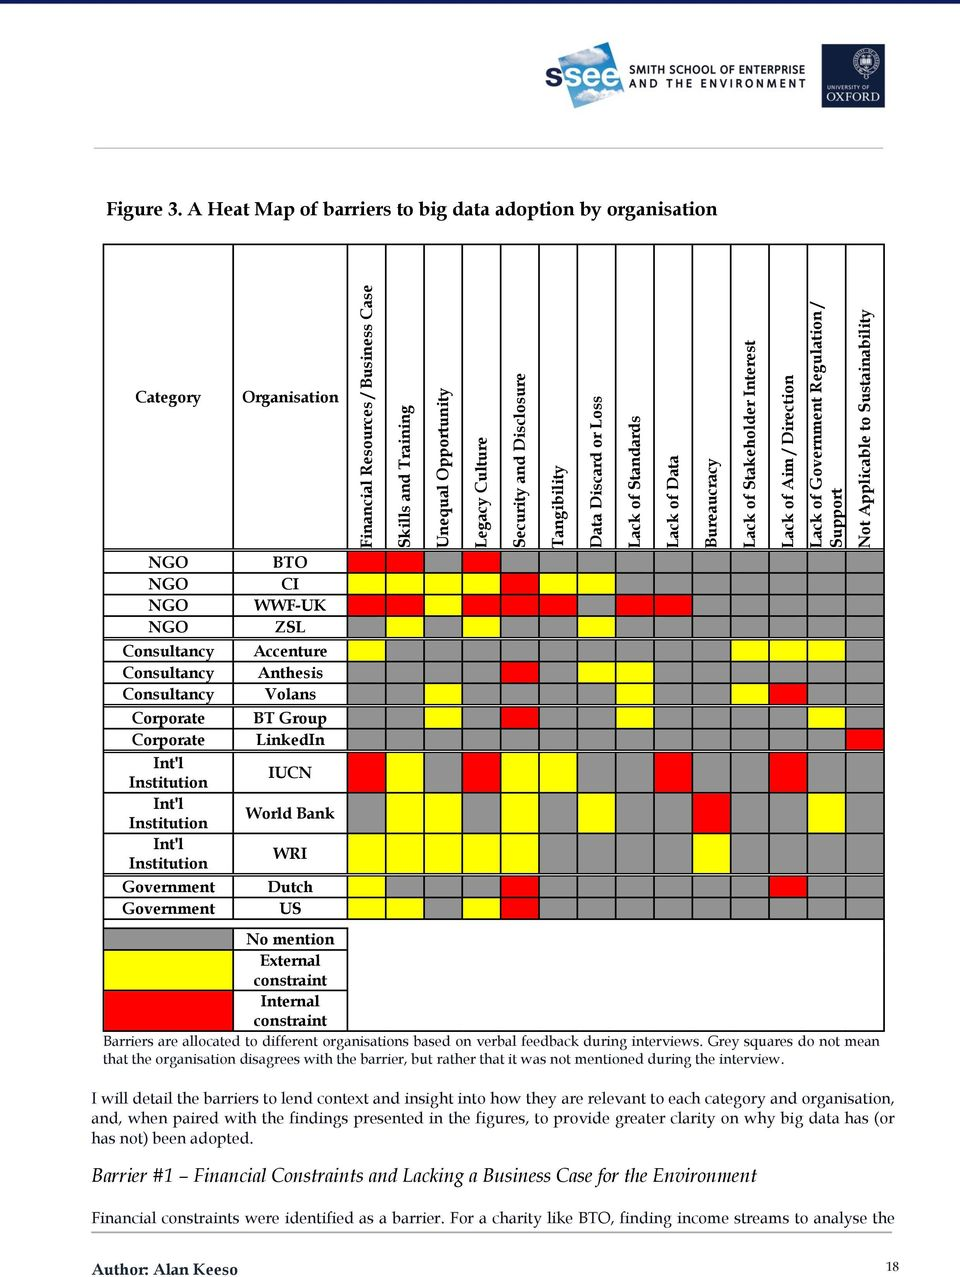 A Heat Map of barriers to big data adoption by organisation Category Organisation NGO NGO NGO NGO Consultancy Consultancy Consultancy Corporate Corporate Int'l Institution Int'l Institution Int'l